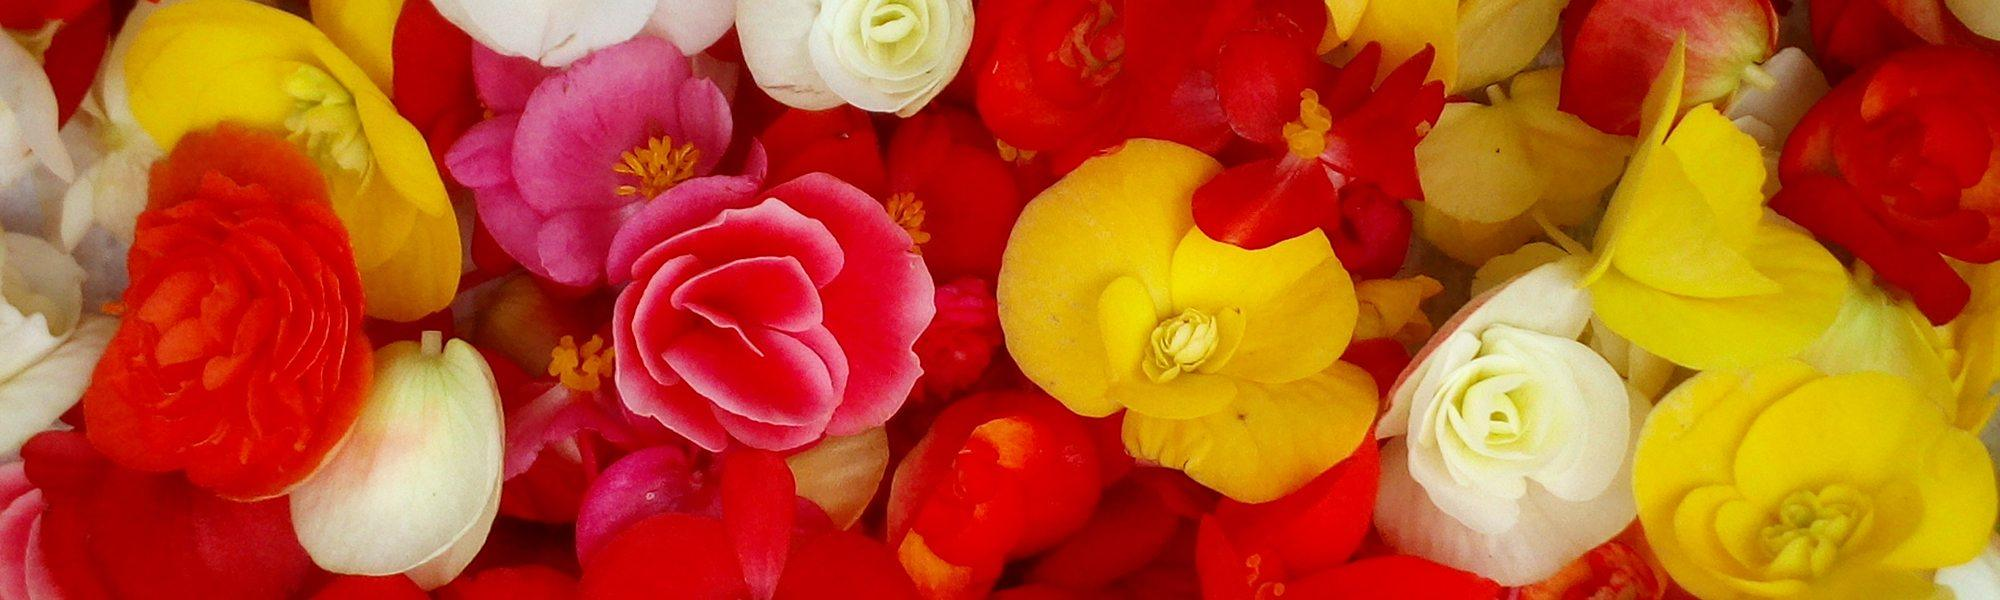 Broutilles Poitiers Begonia